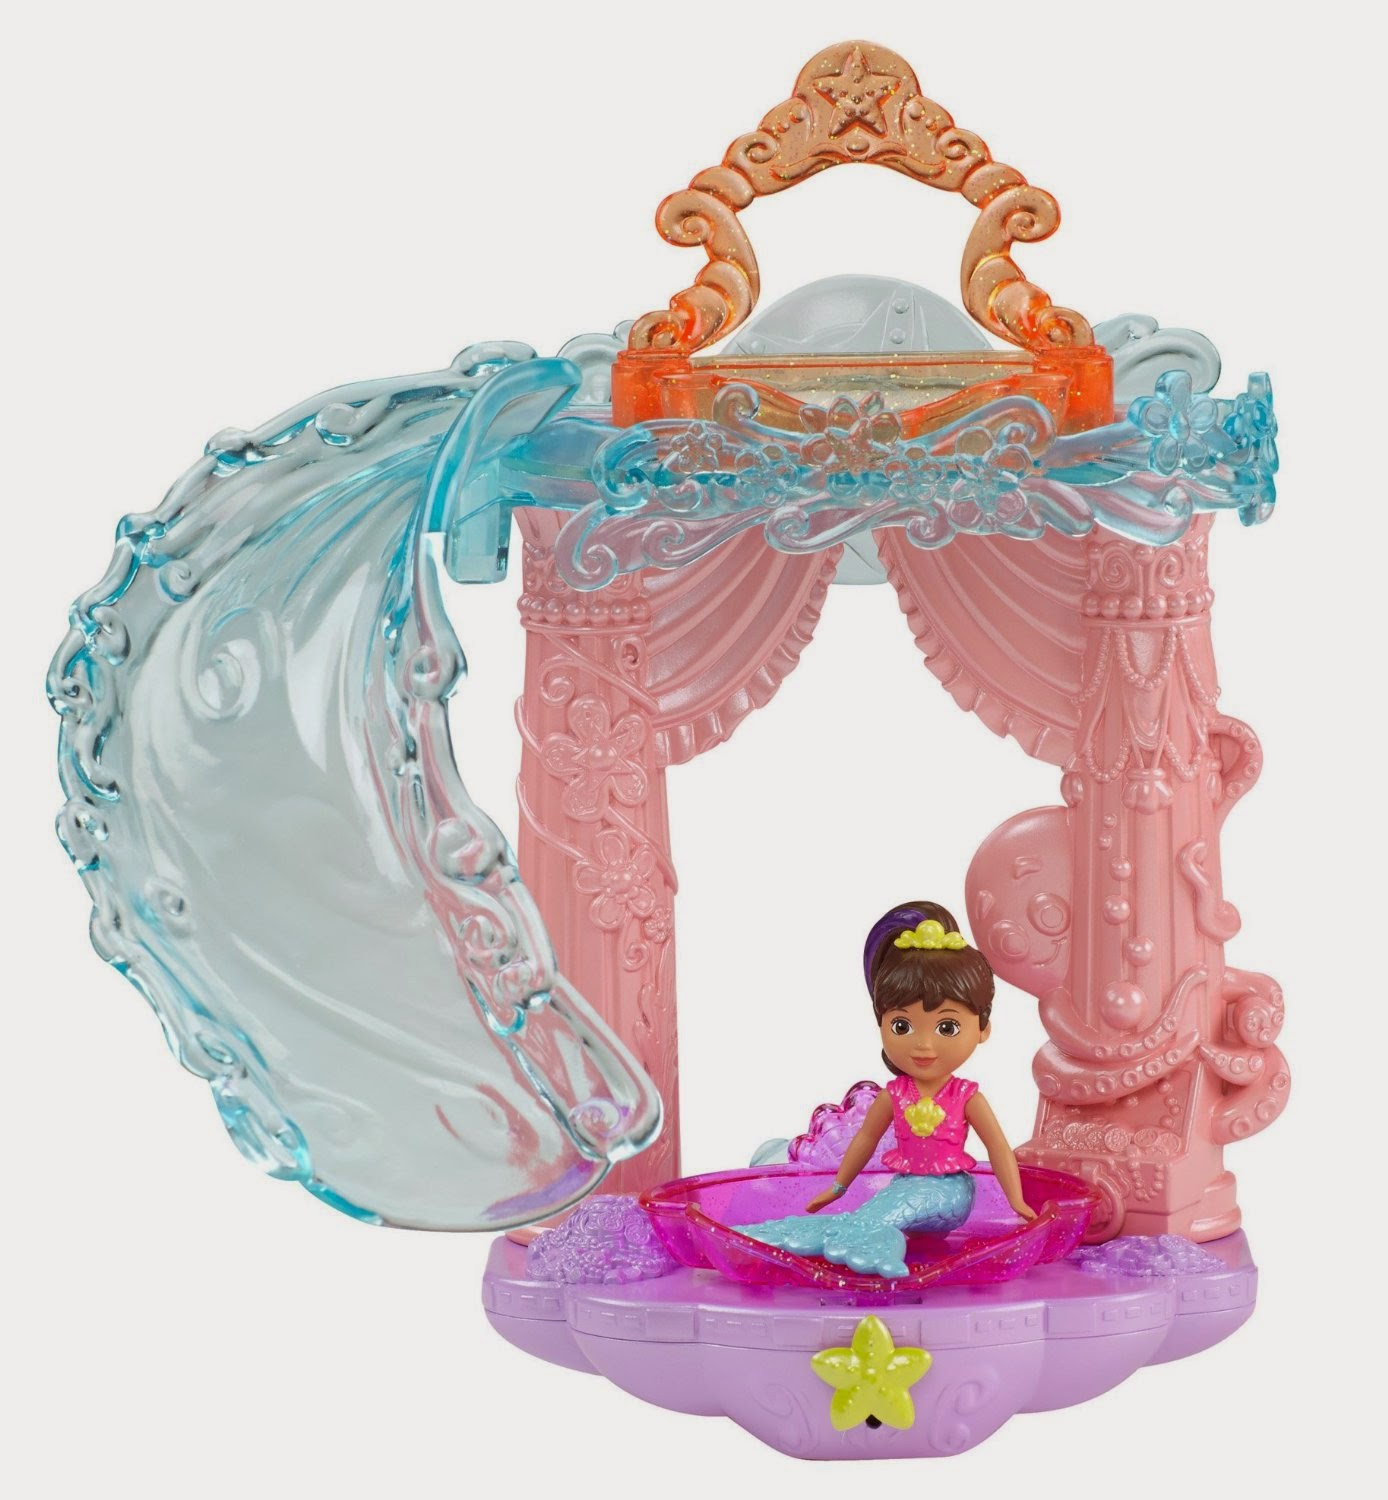 Fisher Price Dora and Friends Slide and Splash Mermaid Adventure Bath Set. Mermaids In The Media  A Blog On Mermaids In Movies  Music Videos